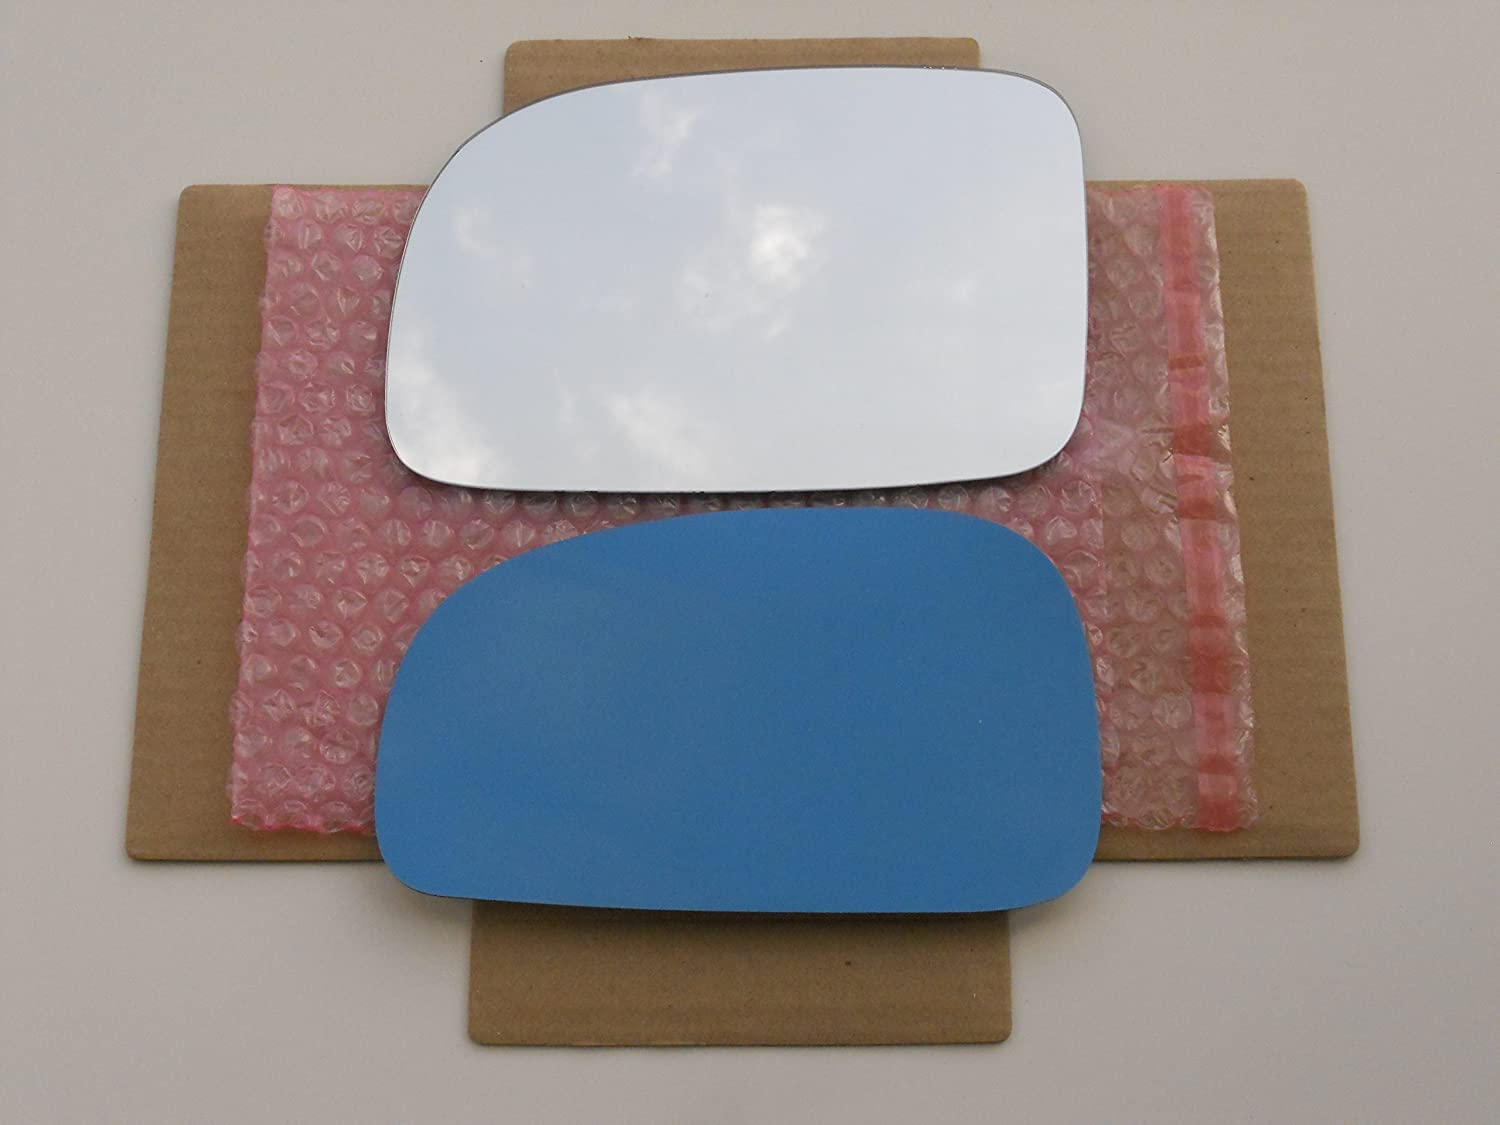 New Replacement Mirror Glass with FULL SIZE ADHESIVE for 2007-2012 HYUNDAI SANTA FE Driver Side View Left LH